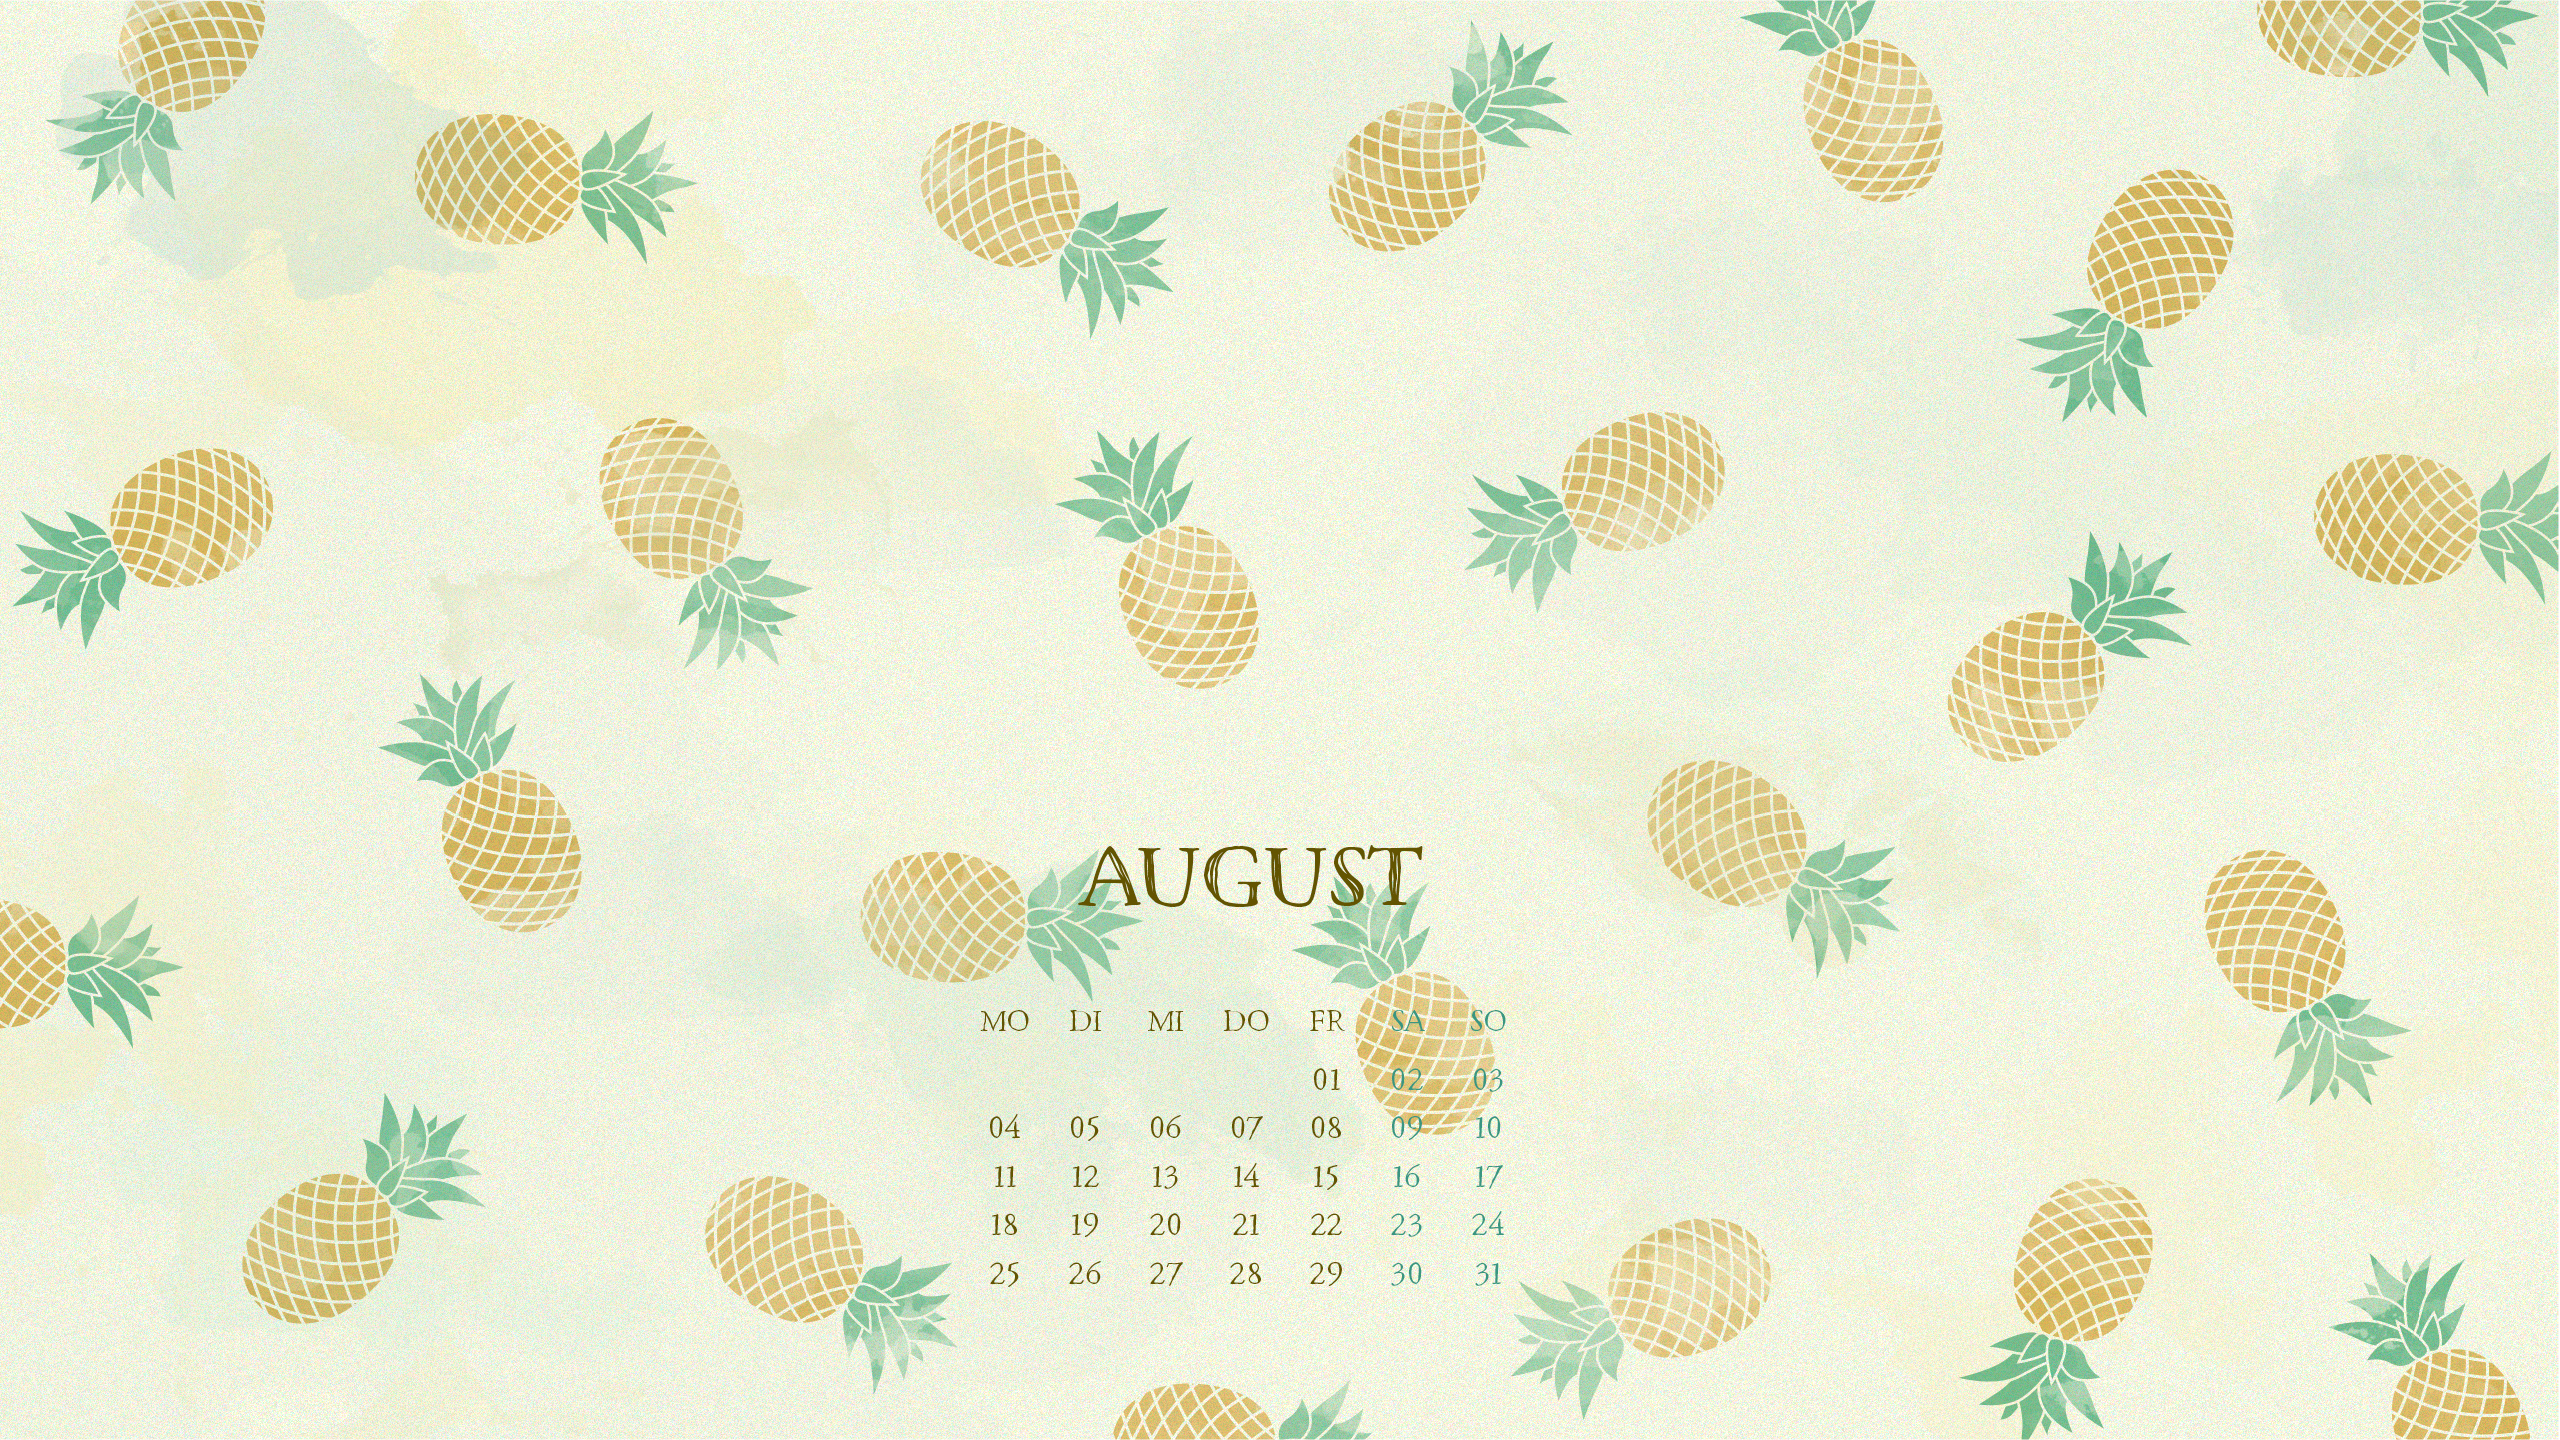 august_2560x1440_sodapop